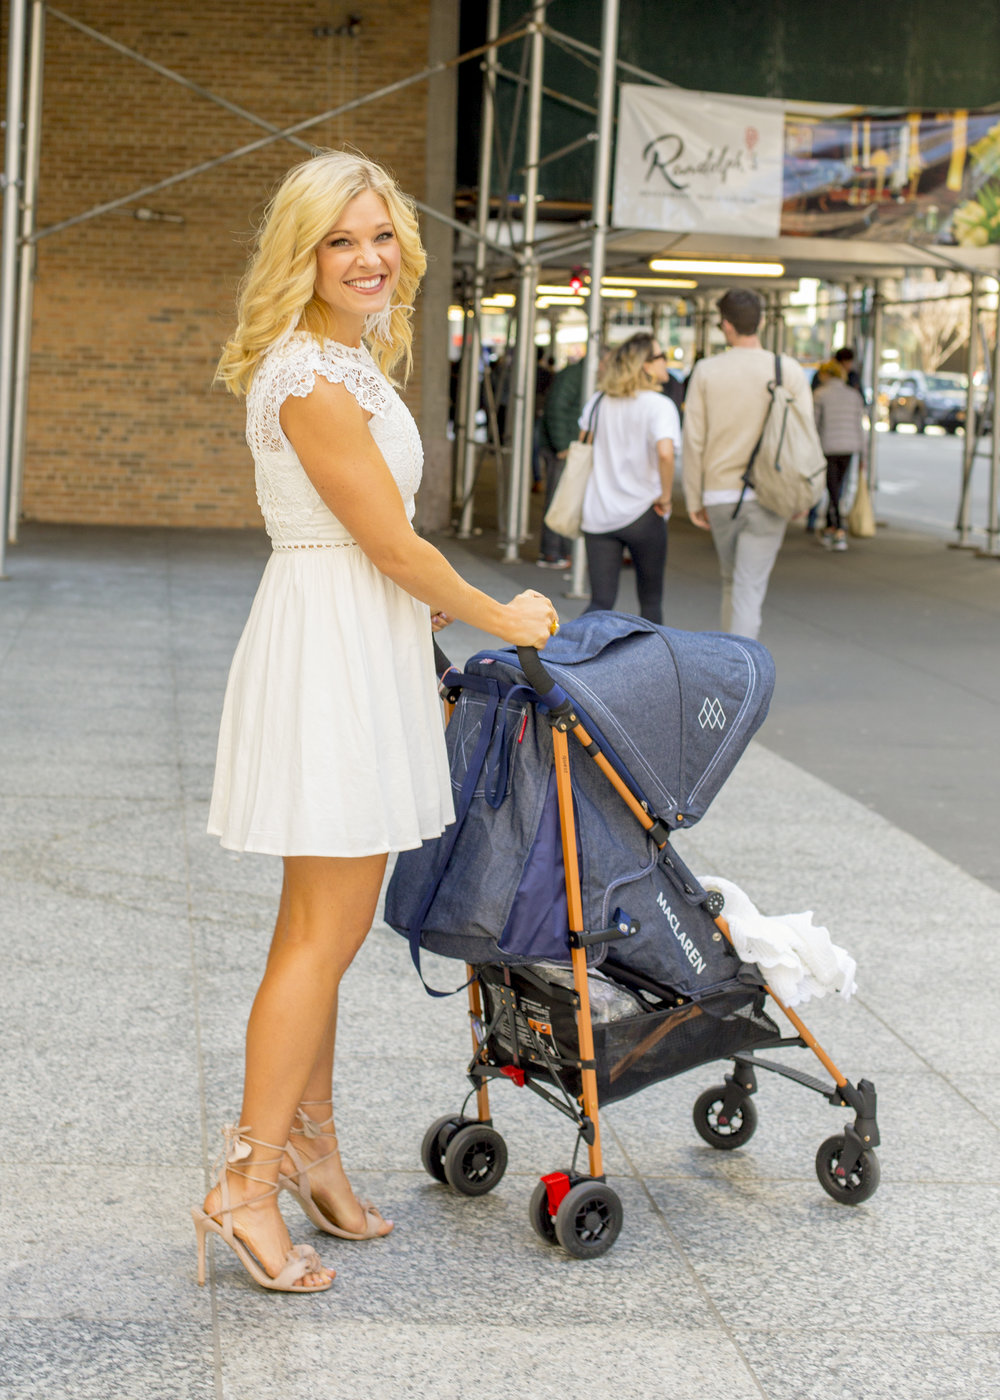 Anna Kooiman New York City 2018 Baby Brooks Newborn Infant Mom NYC fashion style fitness travel healthy living lifestyle white dress